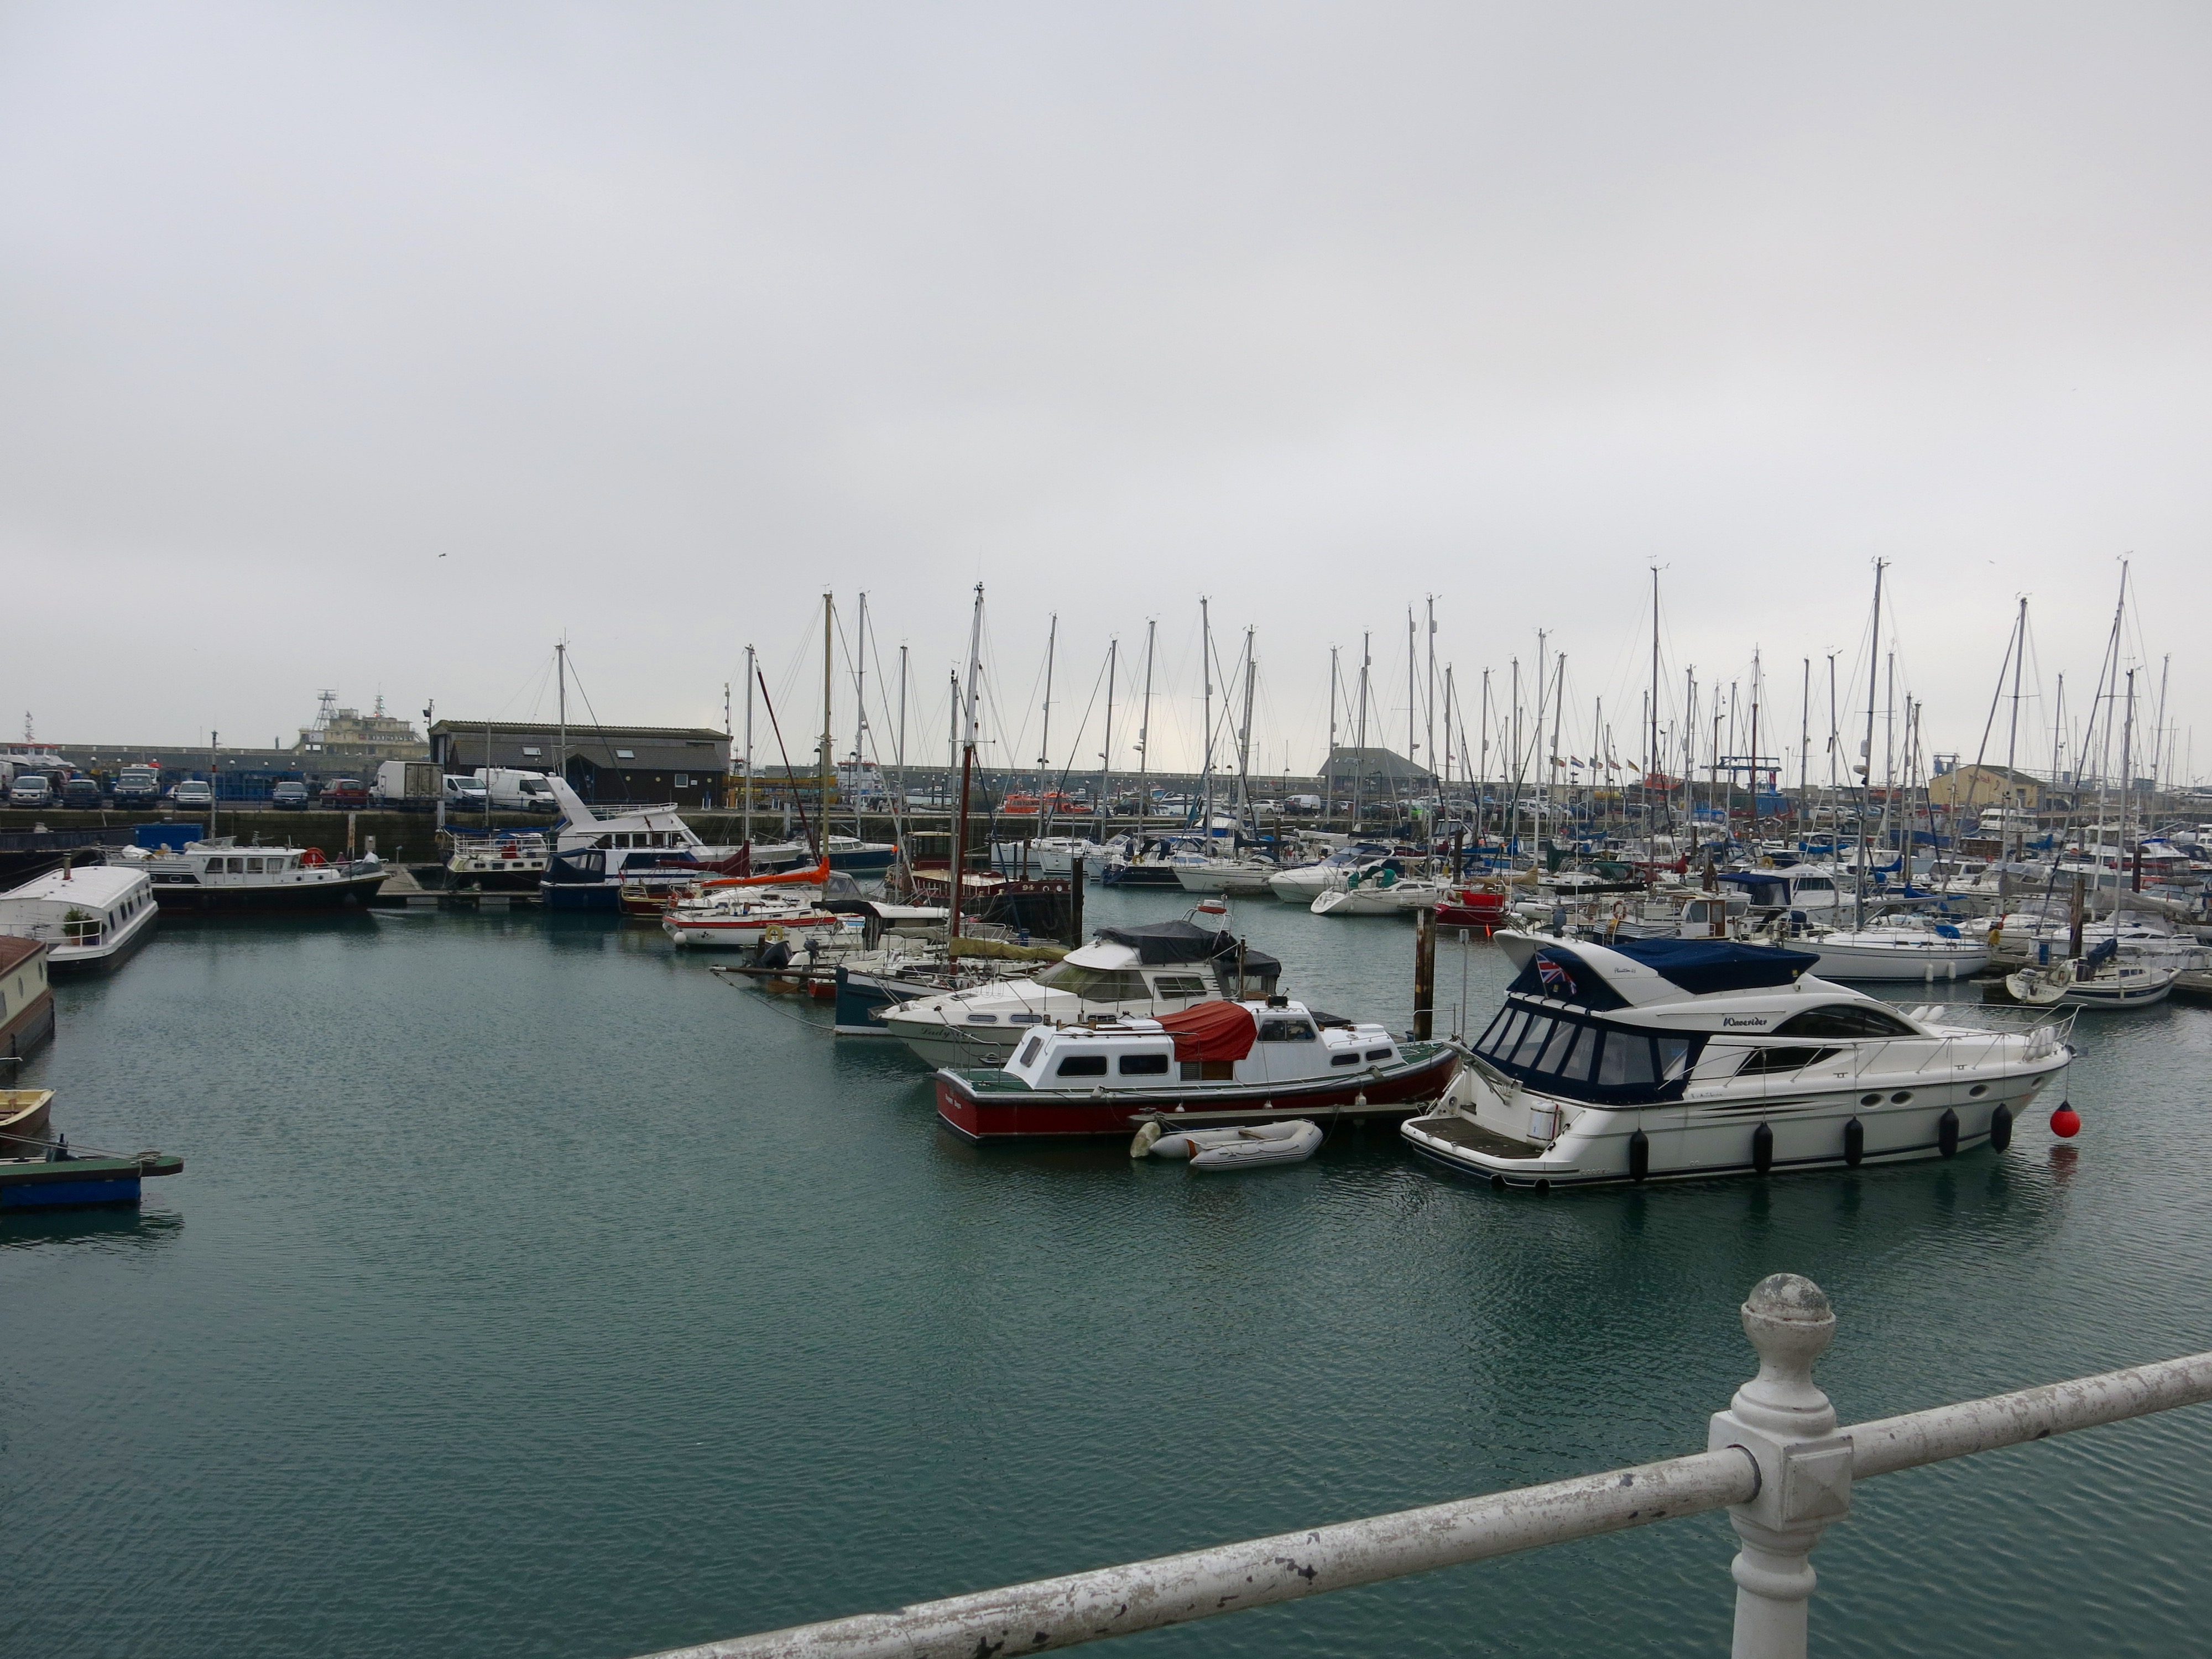 Ramsgate to Margate - 1 (3)